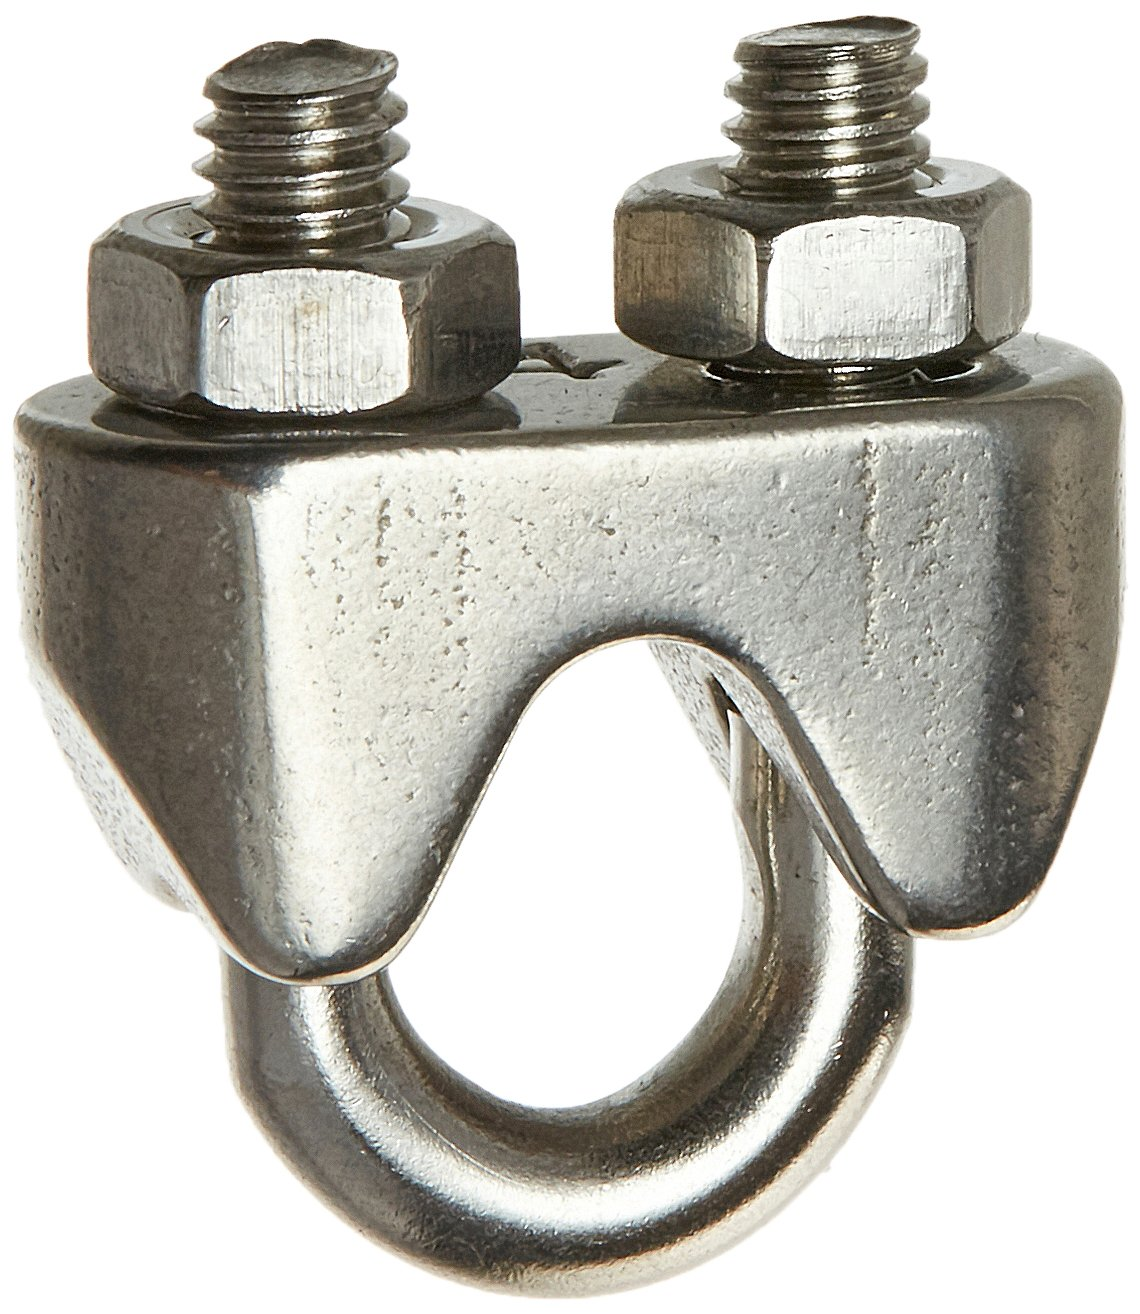 5 Pcs Stainless Steel Cable Clip Saddle Clamp for 15//64 6mm Wire Rope